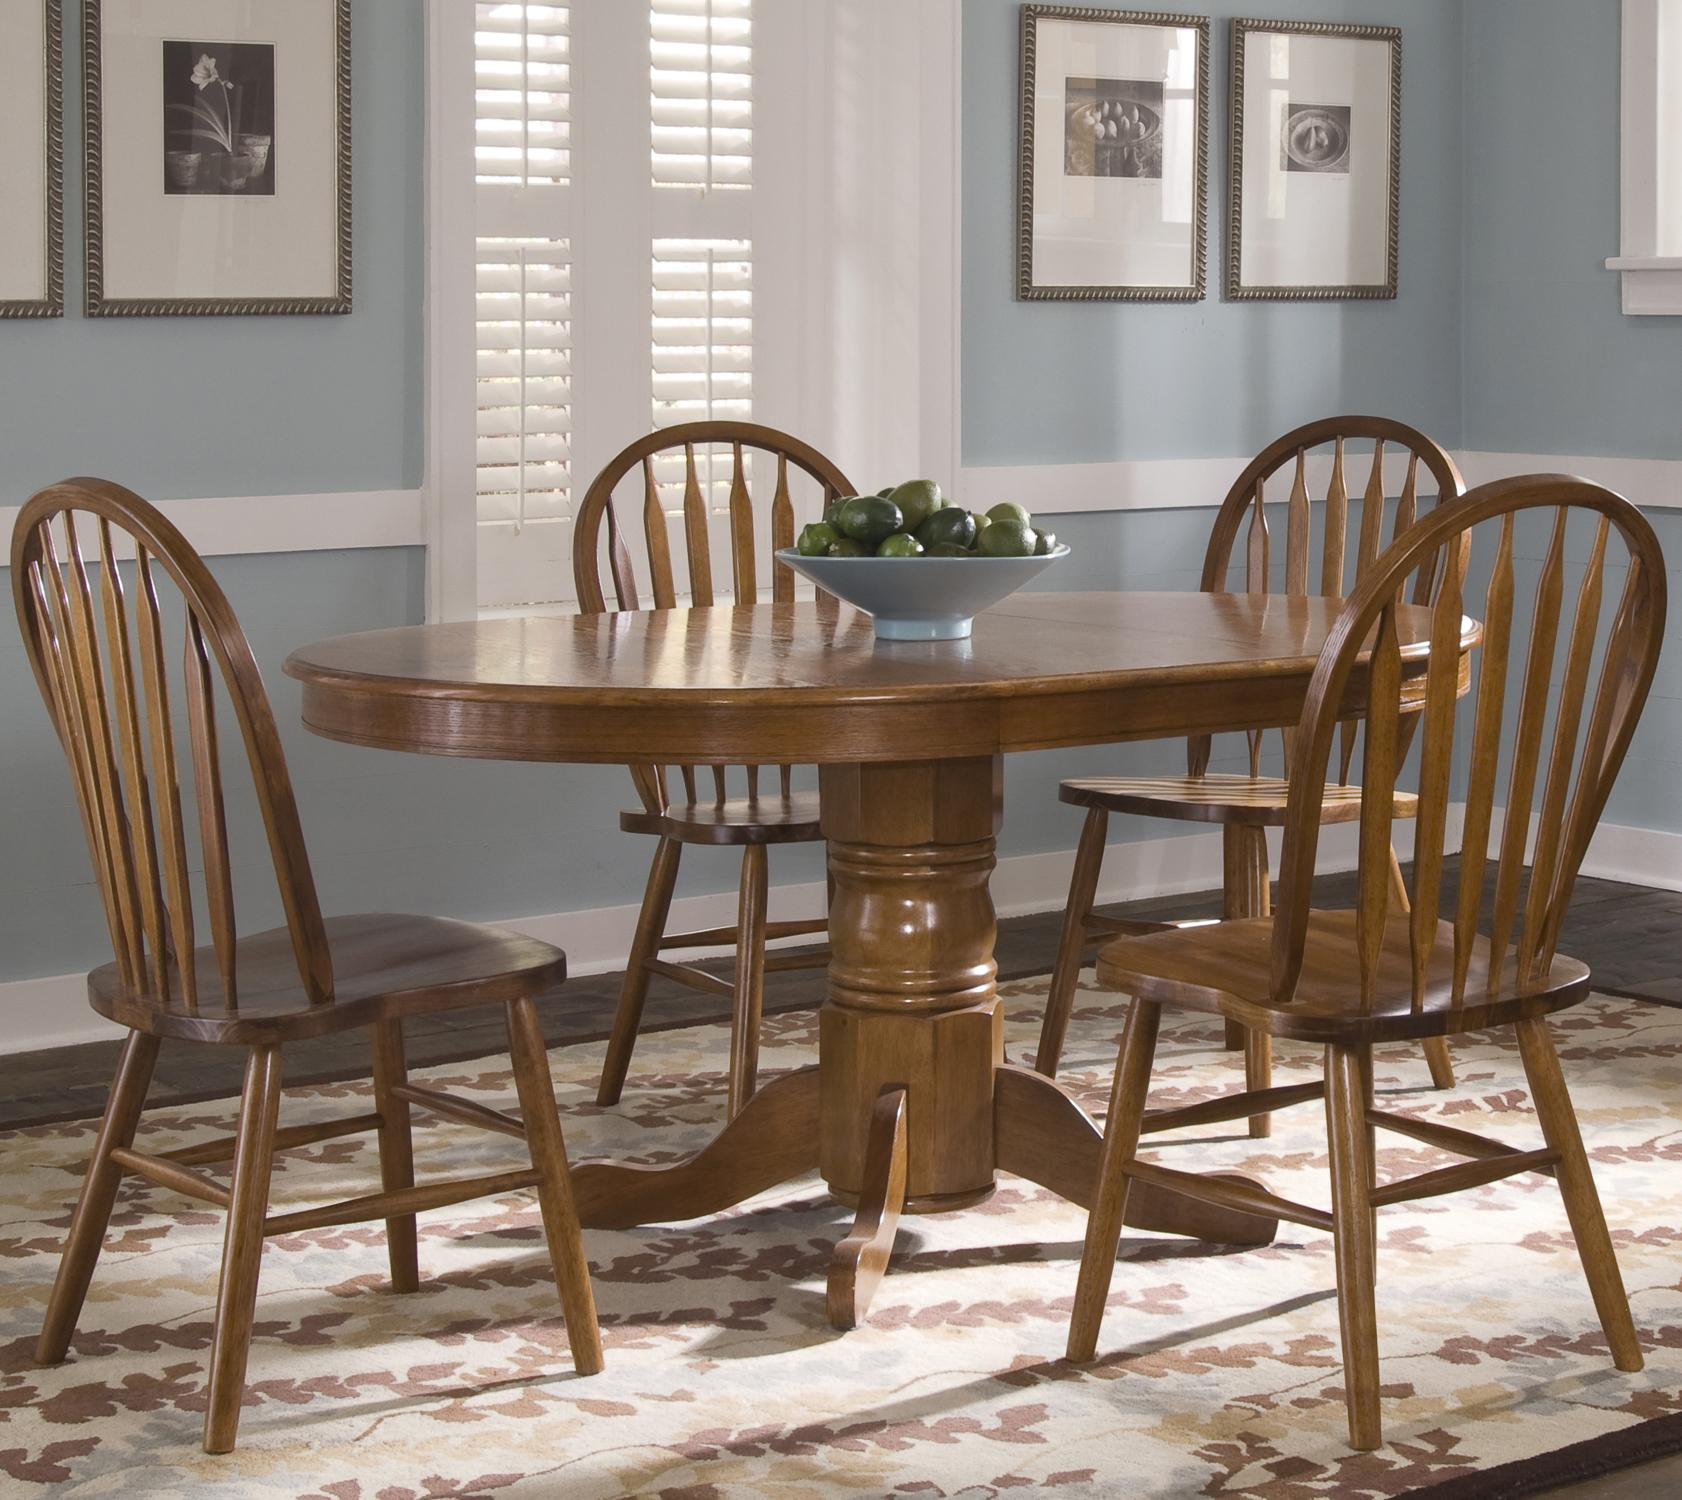 Liberty Furniture Nostalgia Pedestal Table and Side Chair - Item Number 10-CD- & Liberty Furniture Nostalgia Oval Pedestal Dinner Table w/ 4 Windsor ...